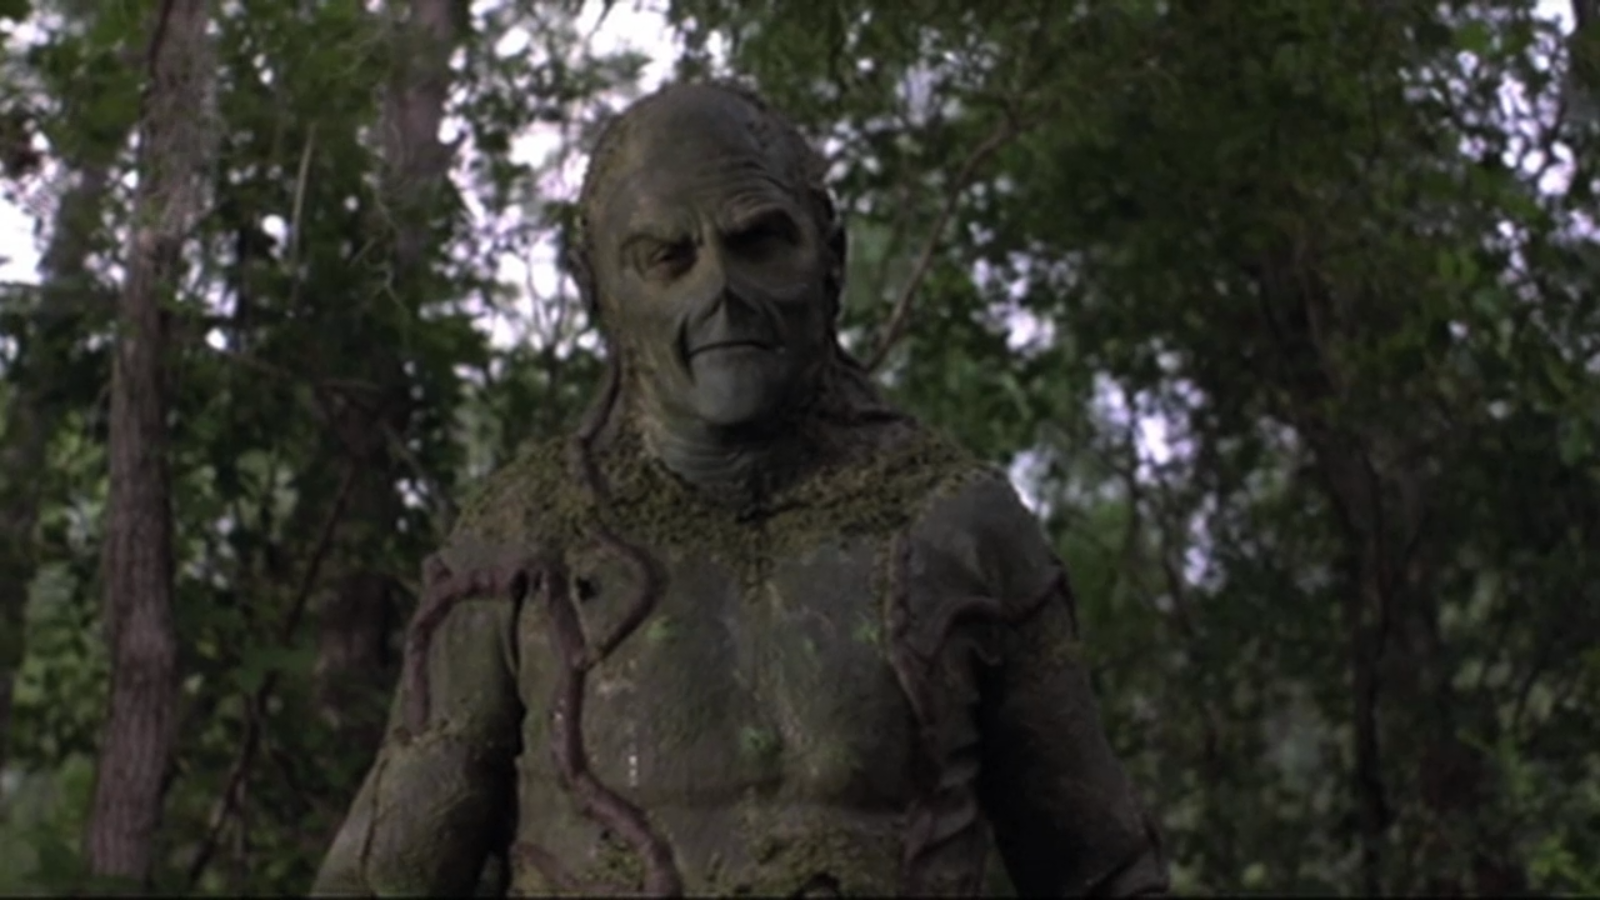 swamp-thing-screen-cap-1